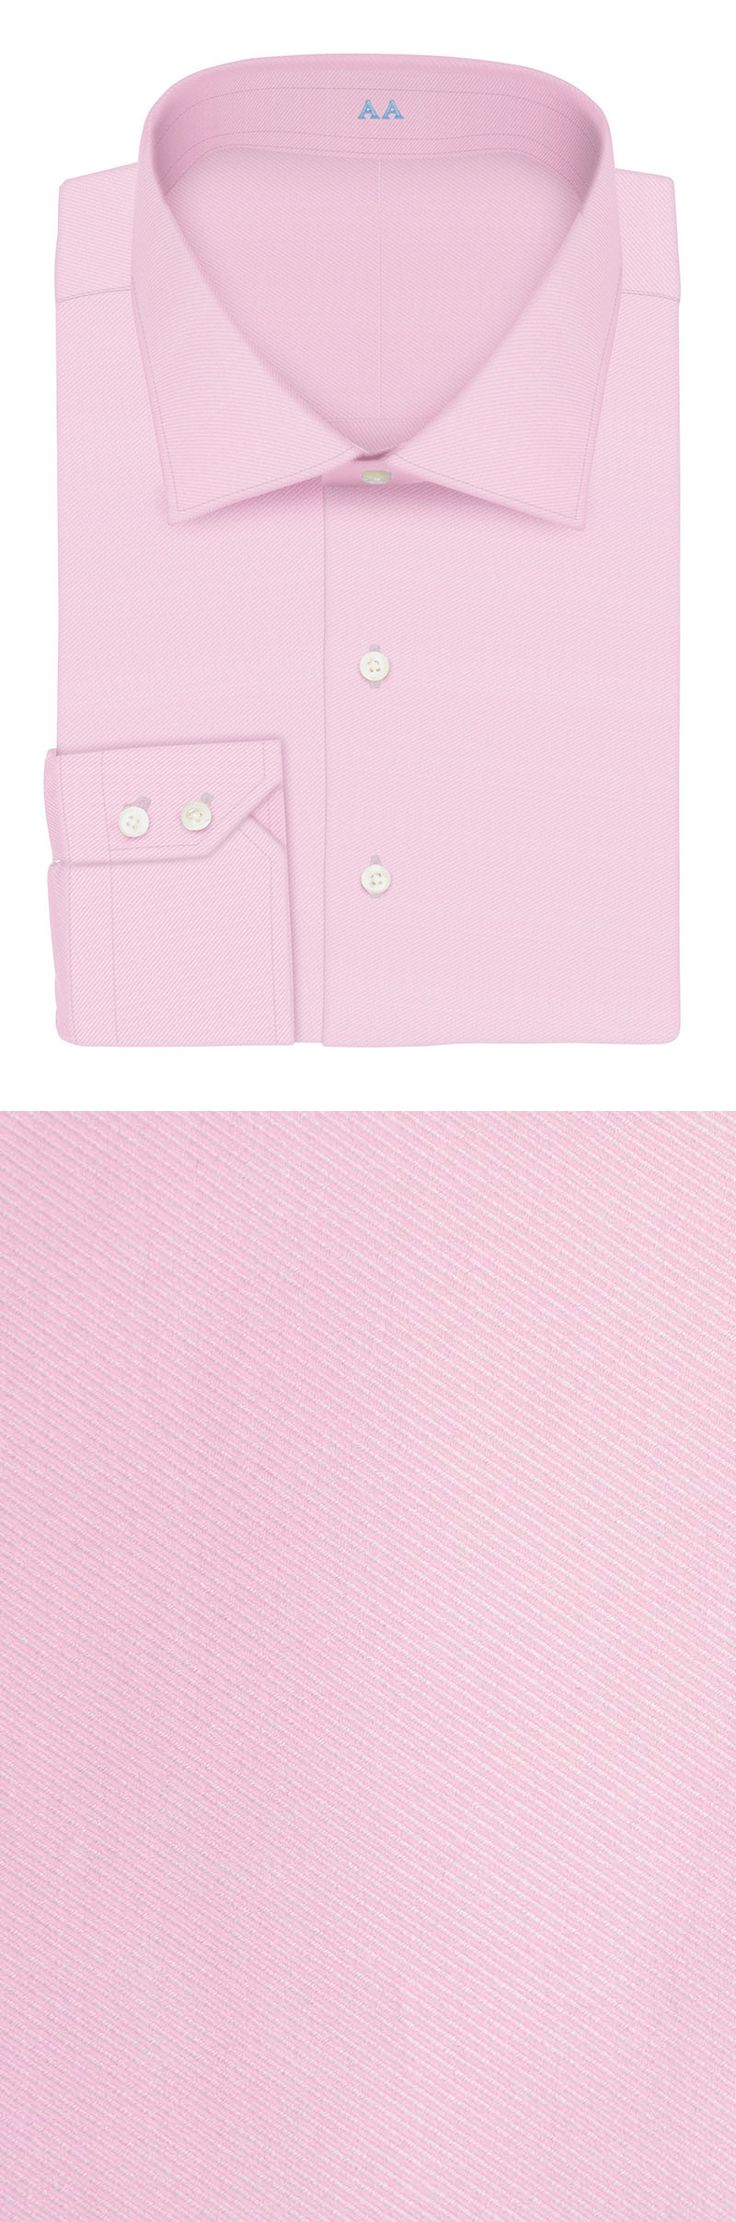 2016 new arriving 100% cotton light pink with cutaway collar and two button cuff slim fit custom made dress shirt